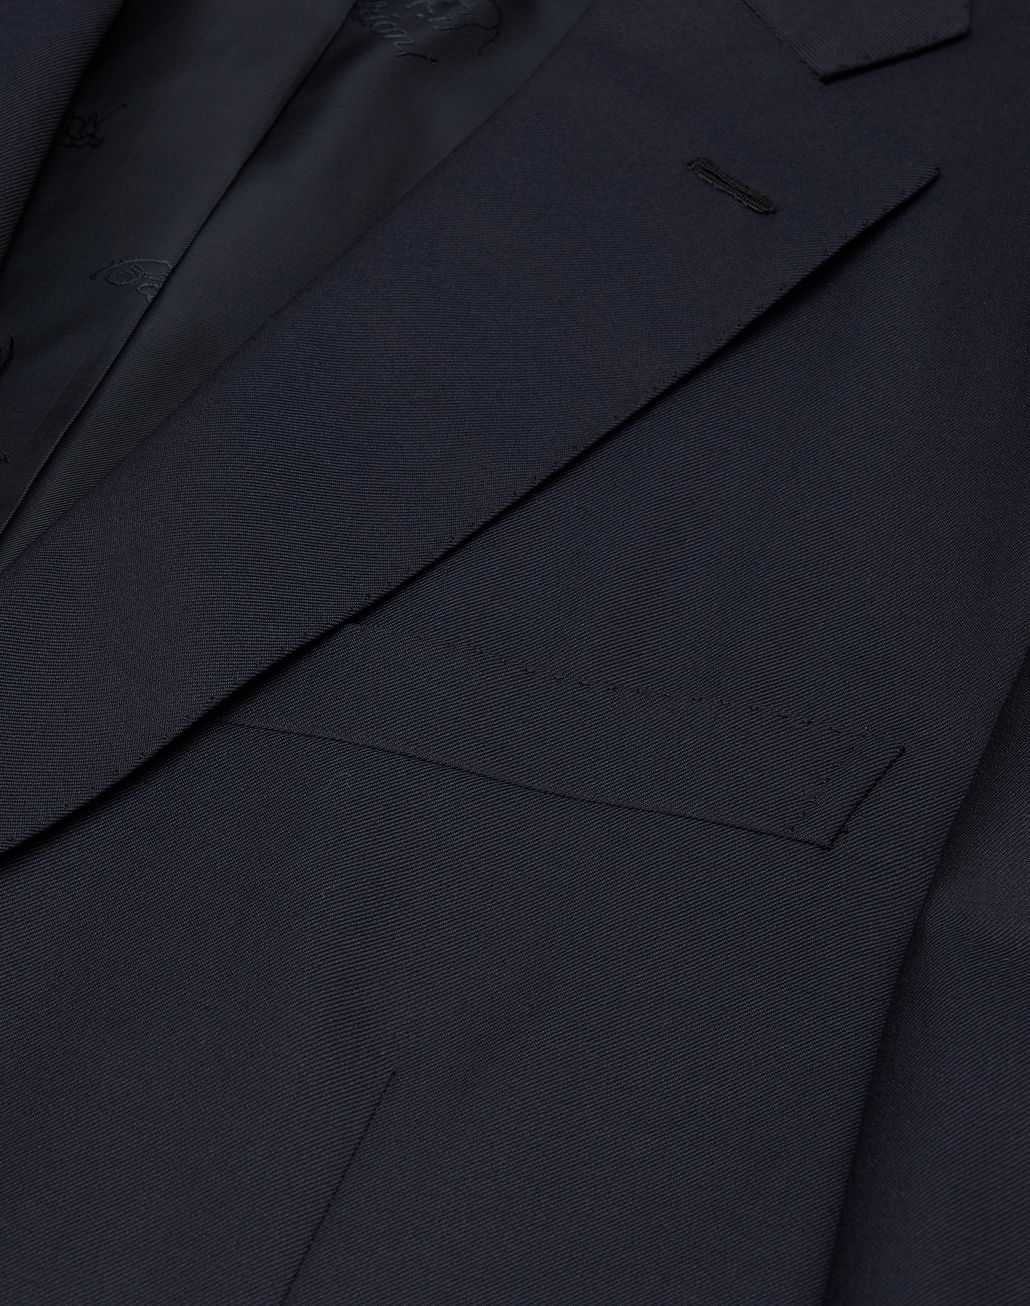 BRIONI Navy Blue Brunico Suit Suits & Jackets U a